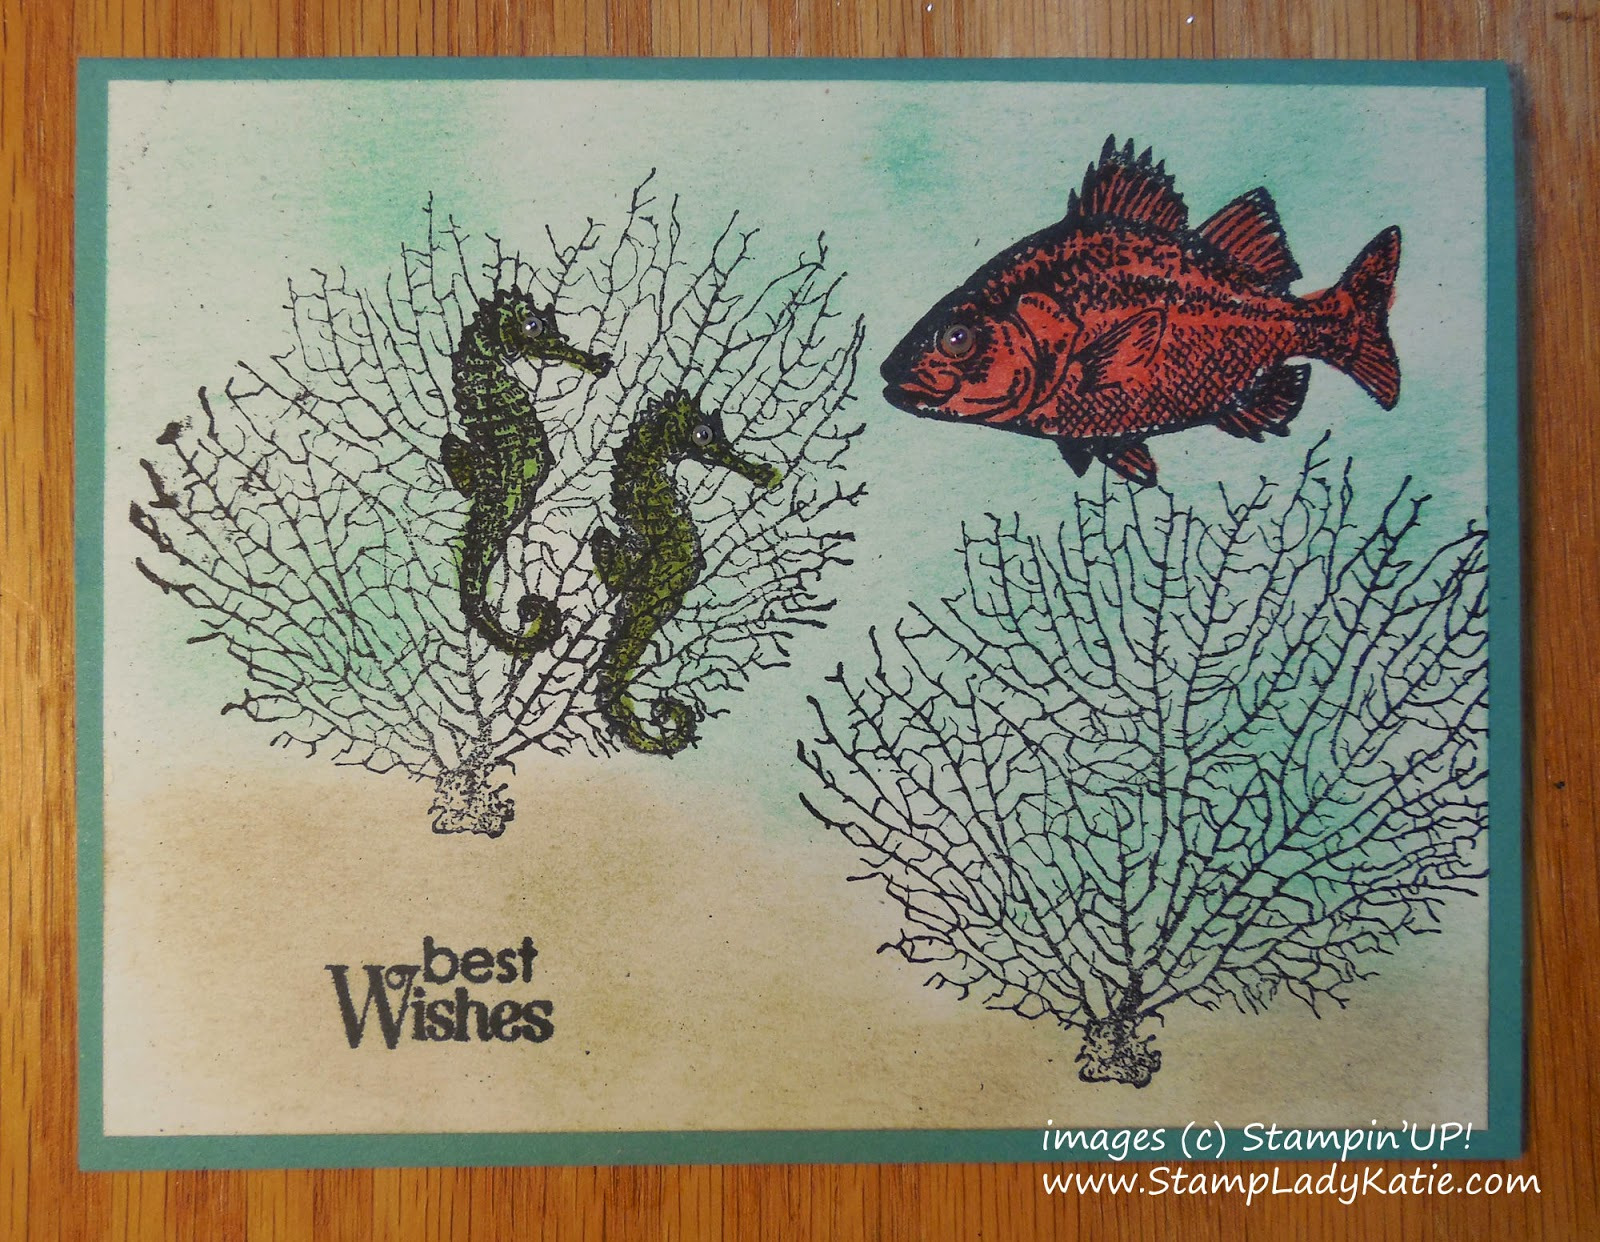 Card made with Stampin'UP!'s stamp set called By the Tide